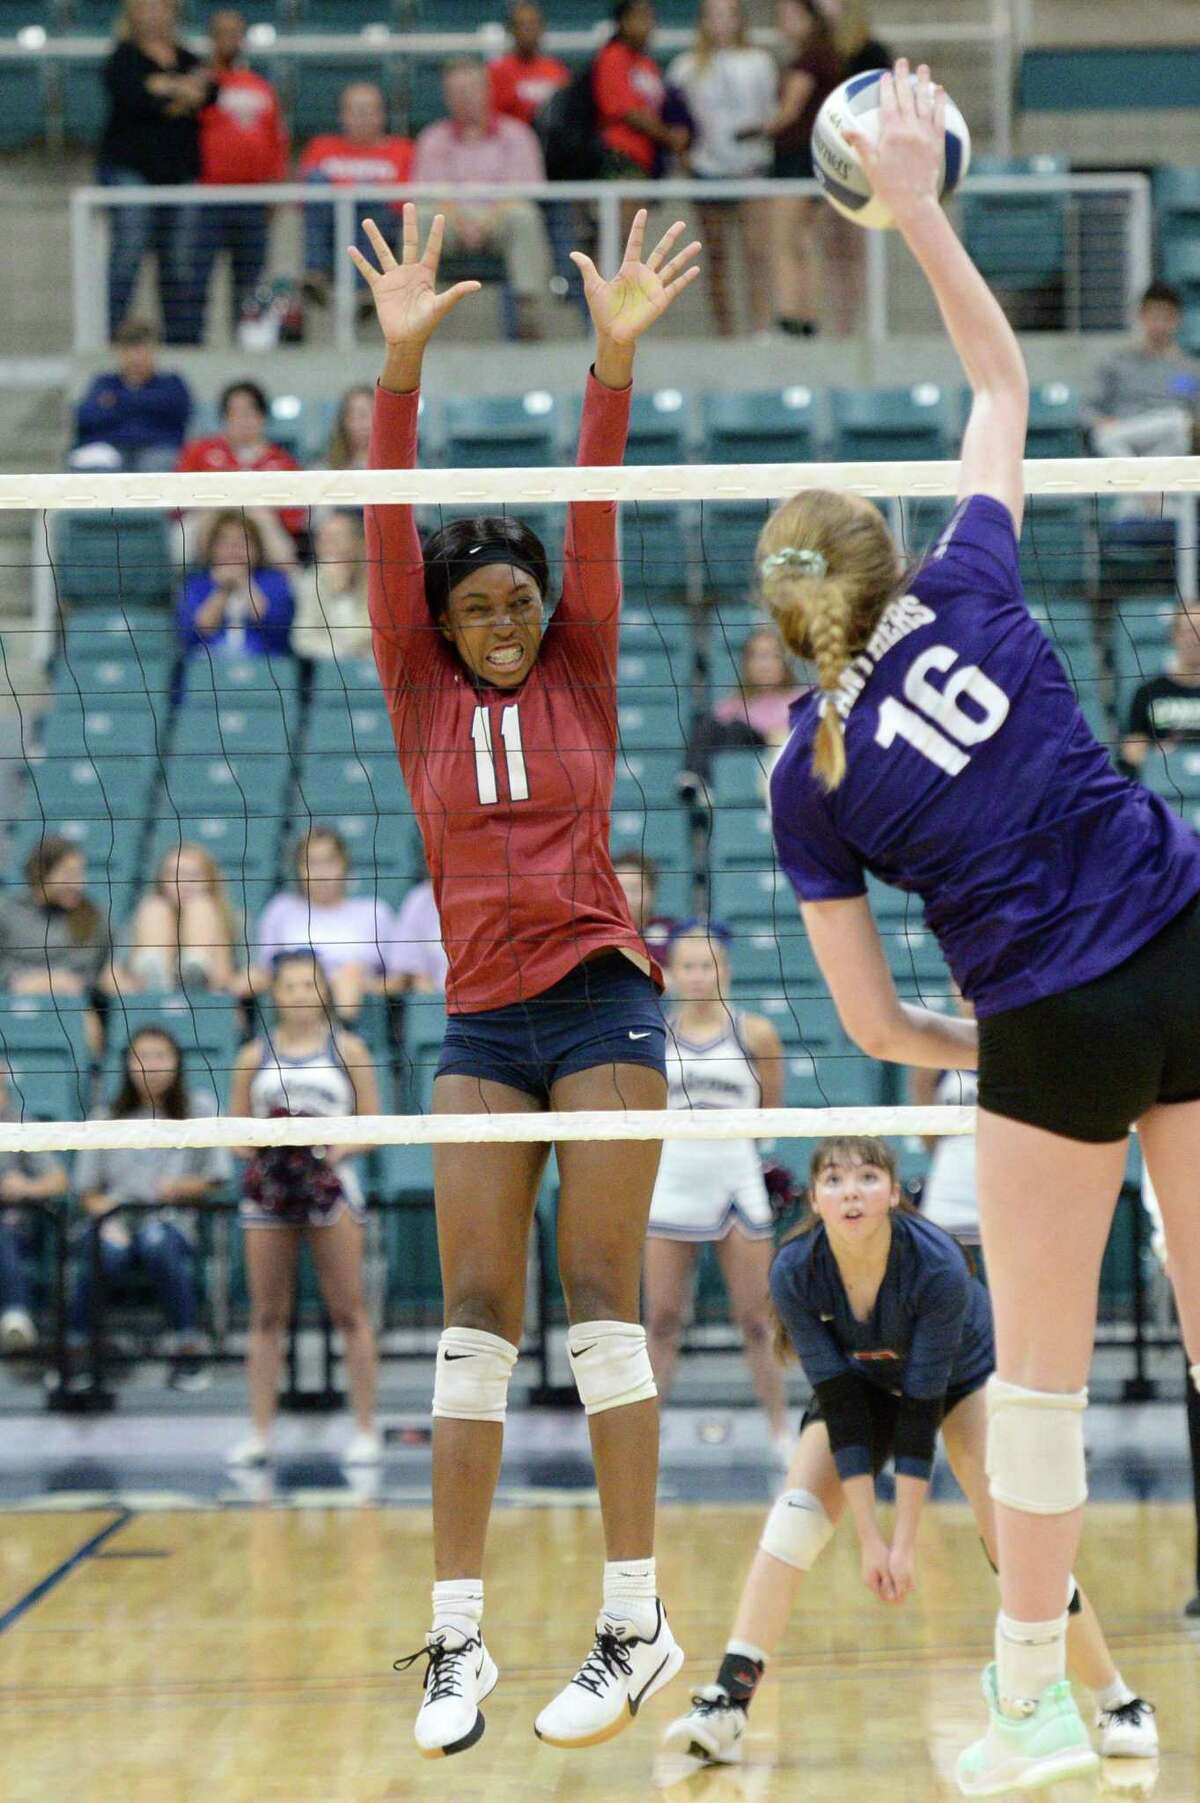 Cindy Tchouangwa (11) of Tompkins goes up for an attempted block during the second set of a Class 6A Region III bi-district volleyball playoff match between the Tompkins Falcons and the Ridge Point Panthers on Tuesday, November 5, 2019 at the Leonard Merrell Center, Katy, TX.